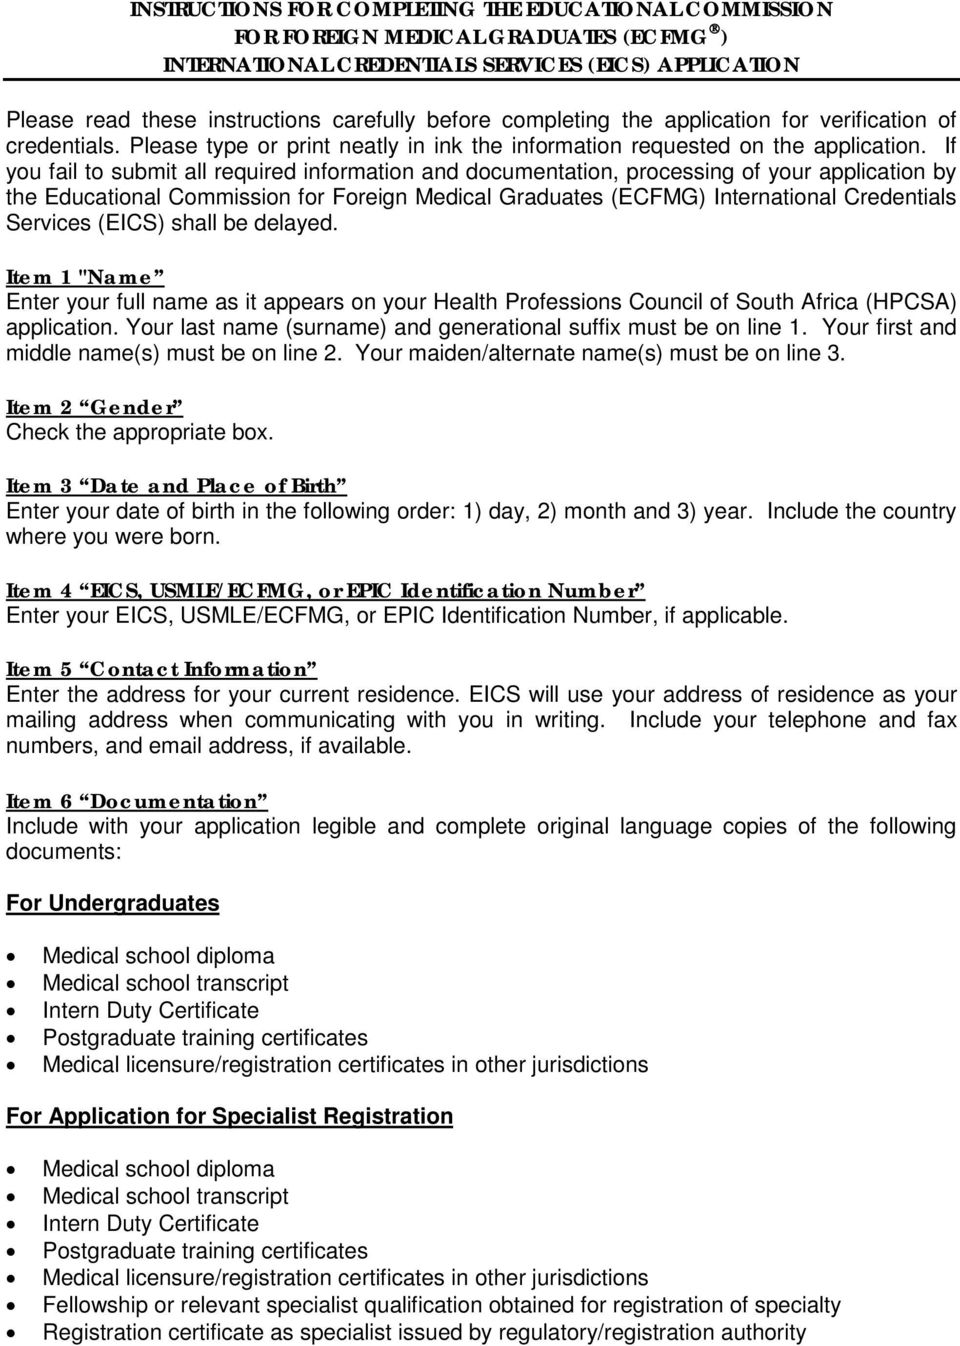 Instructions for Completing the ECFMG International